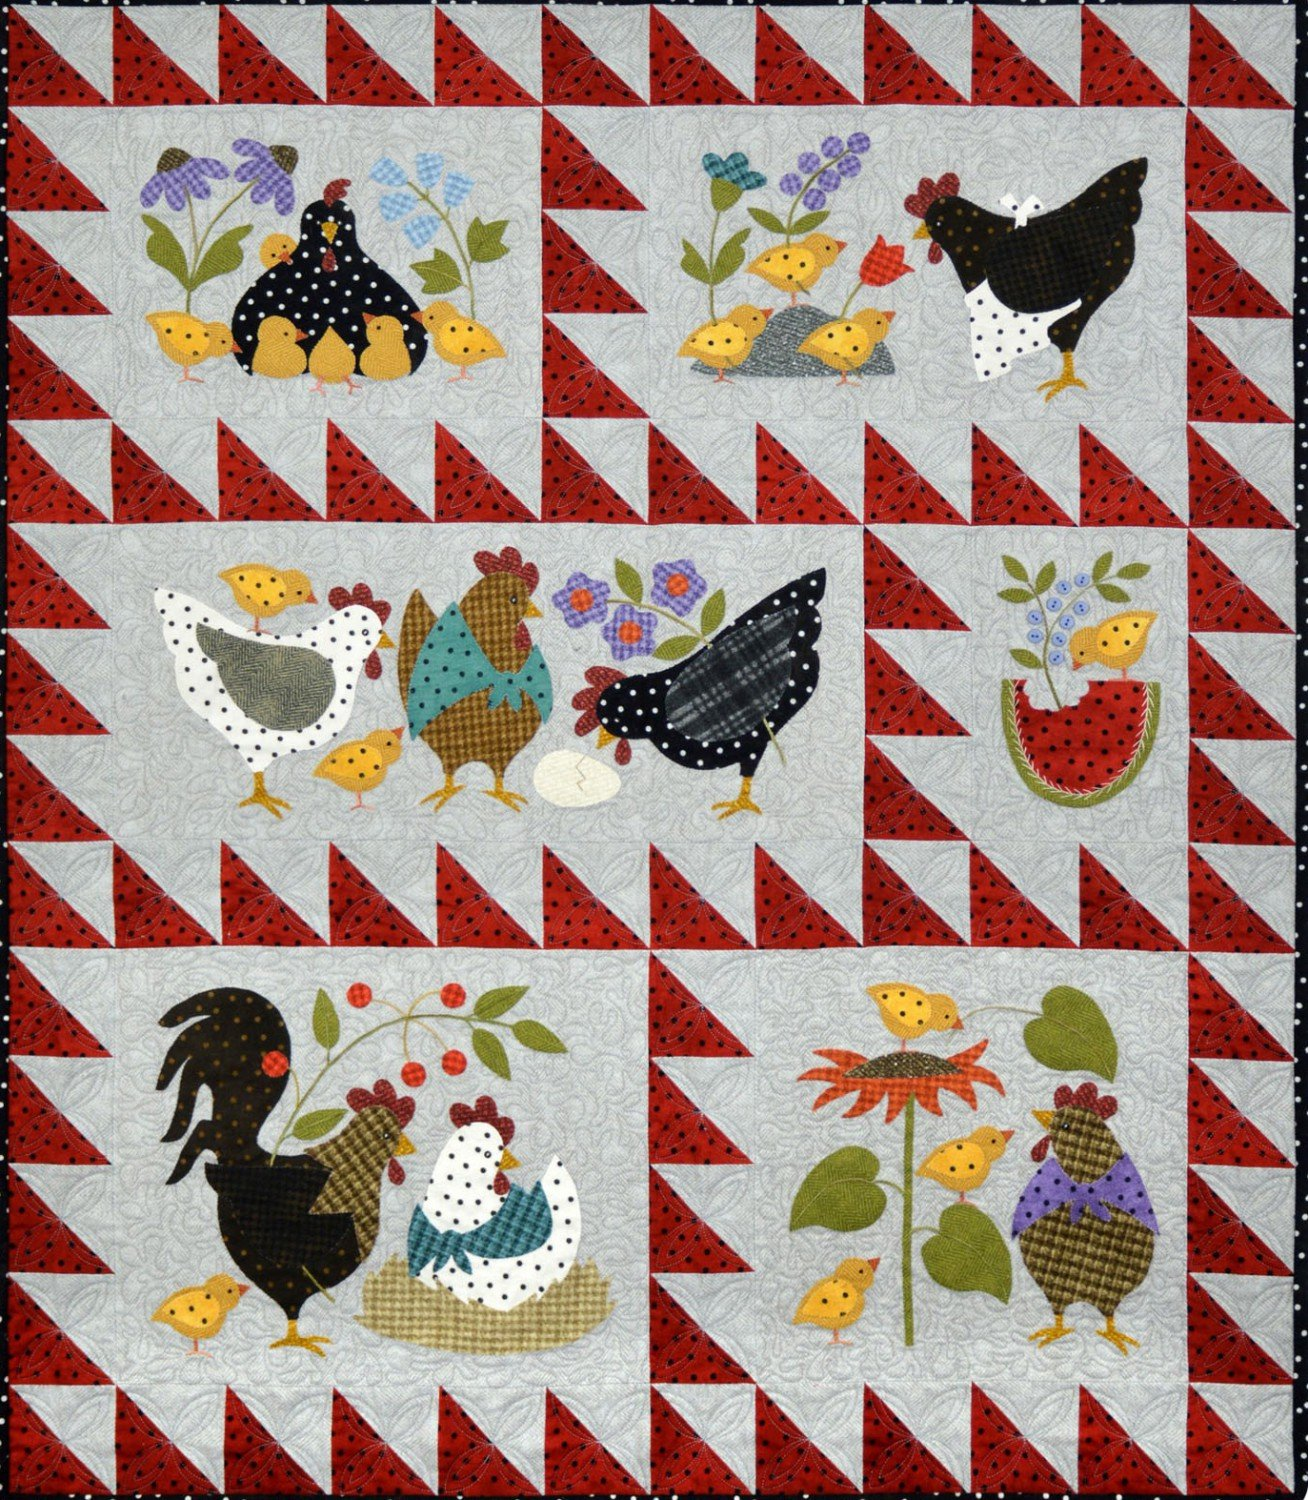 Here A Chick There A Chick Quilt Kit - Light Version